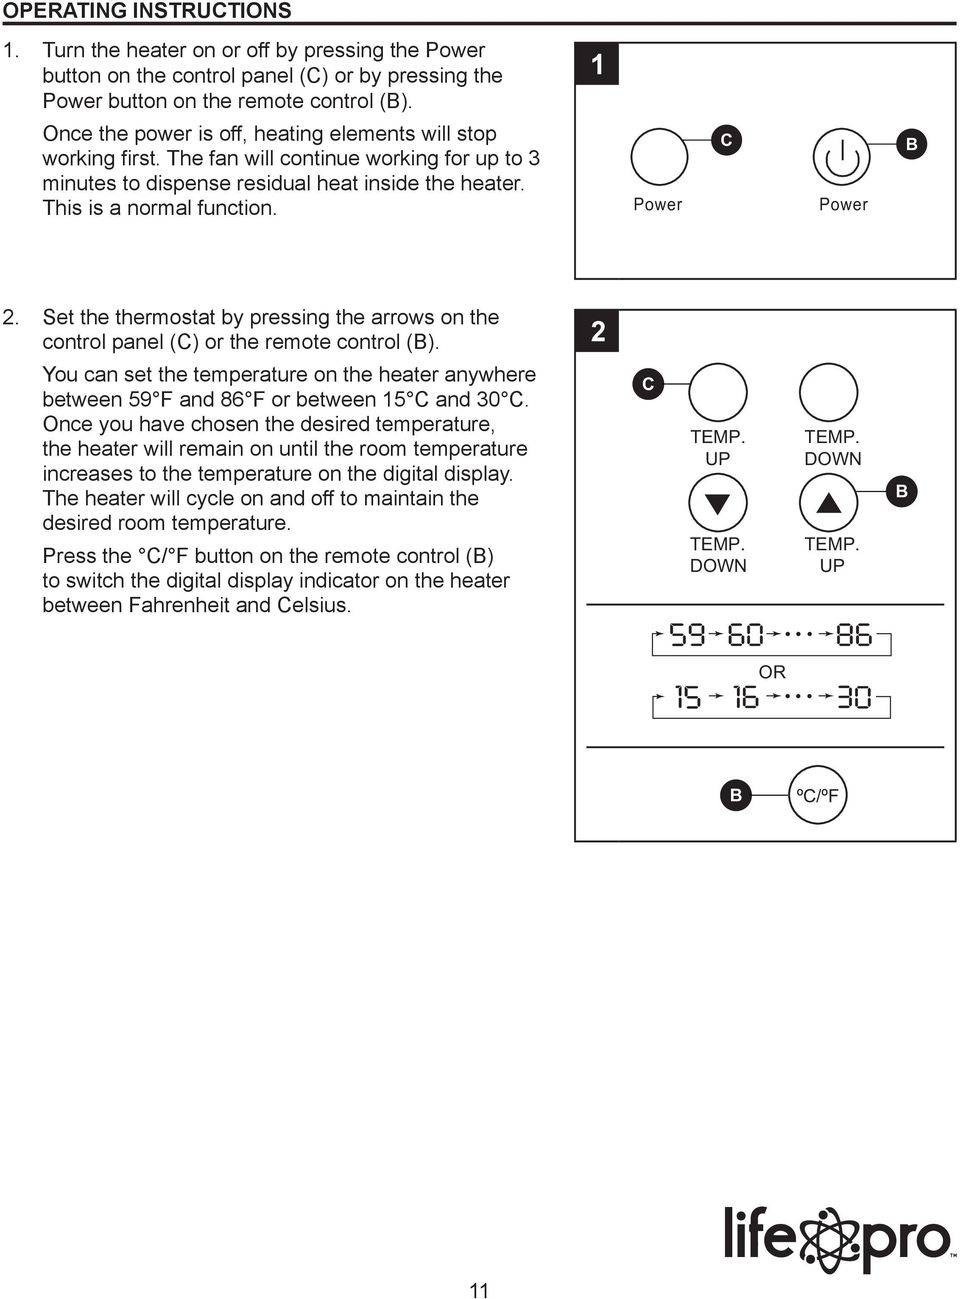 hight resolution of power c power 2 set the thermostat by pressing the arrows on the control panel